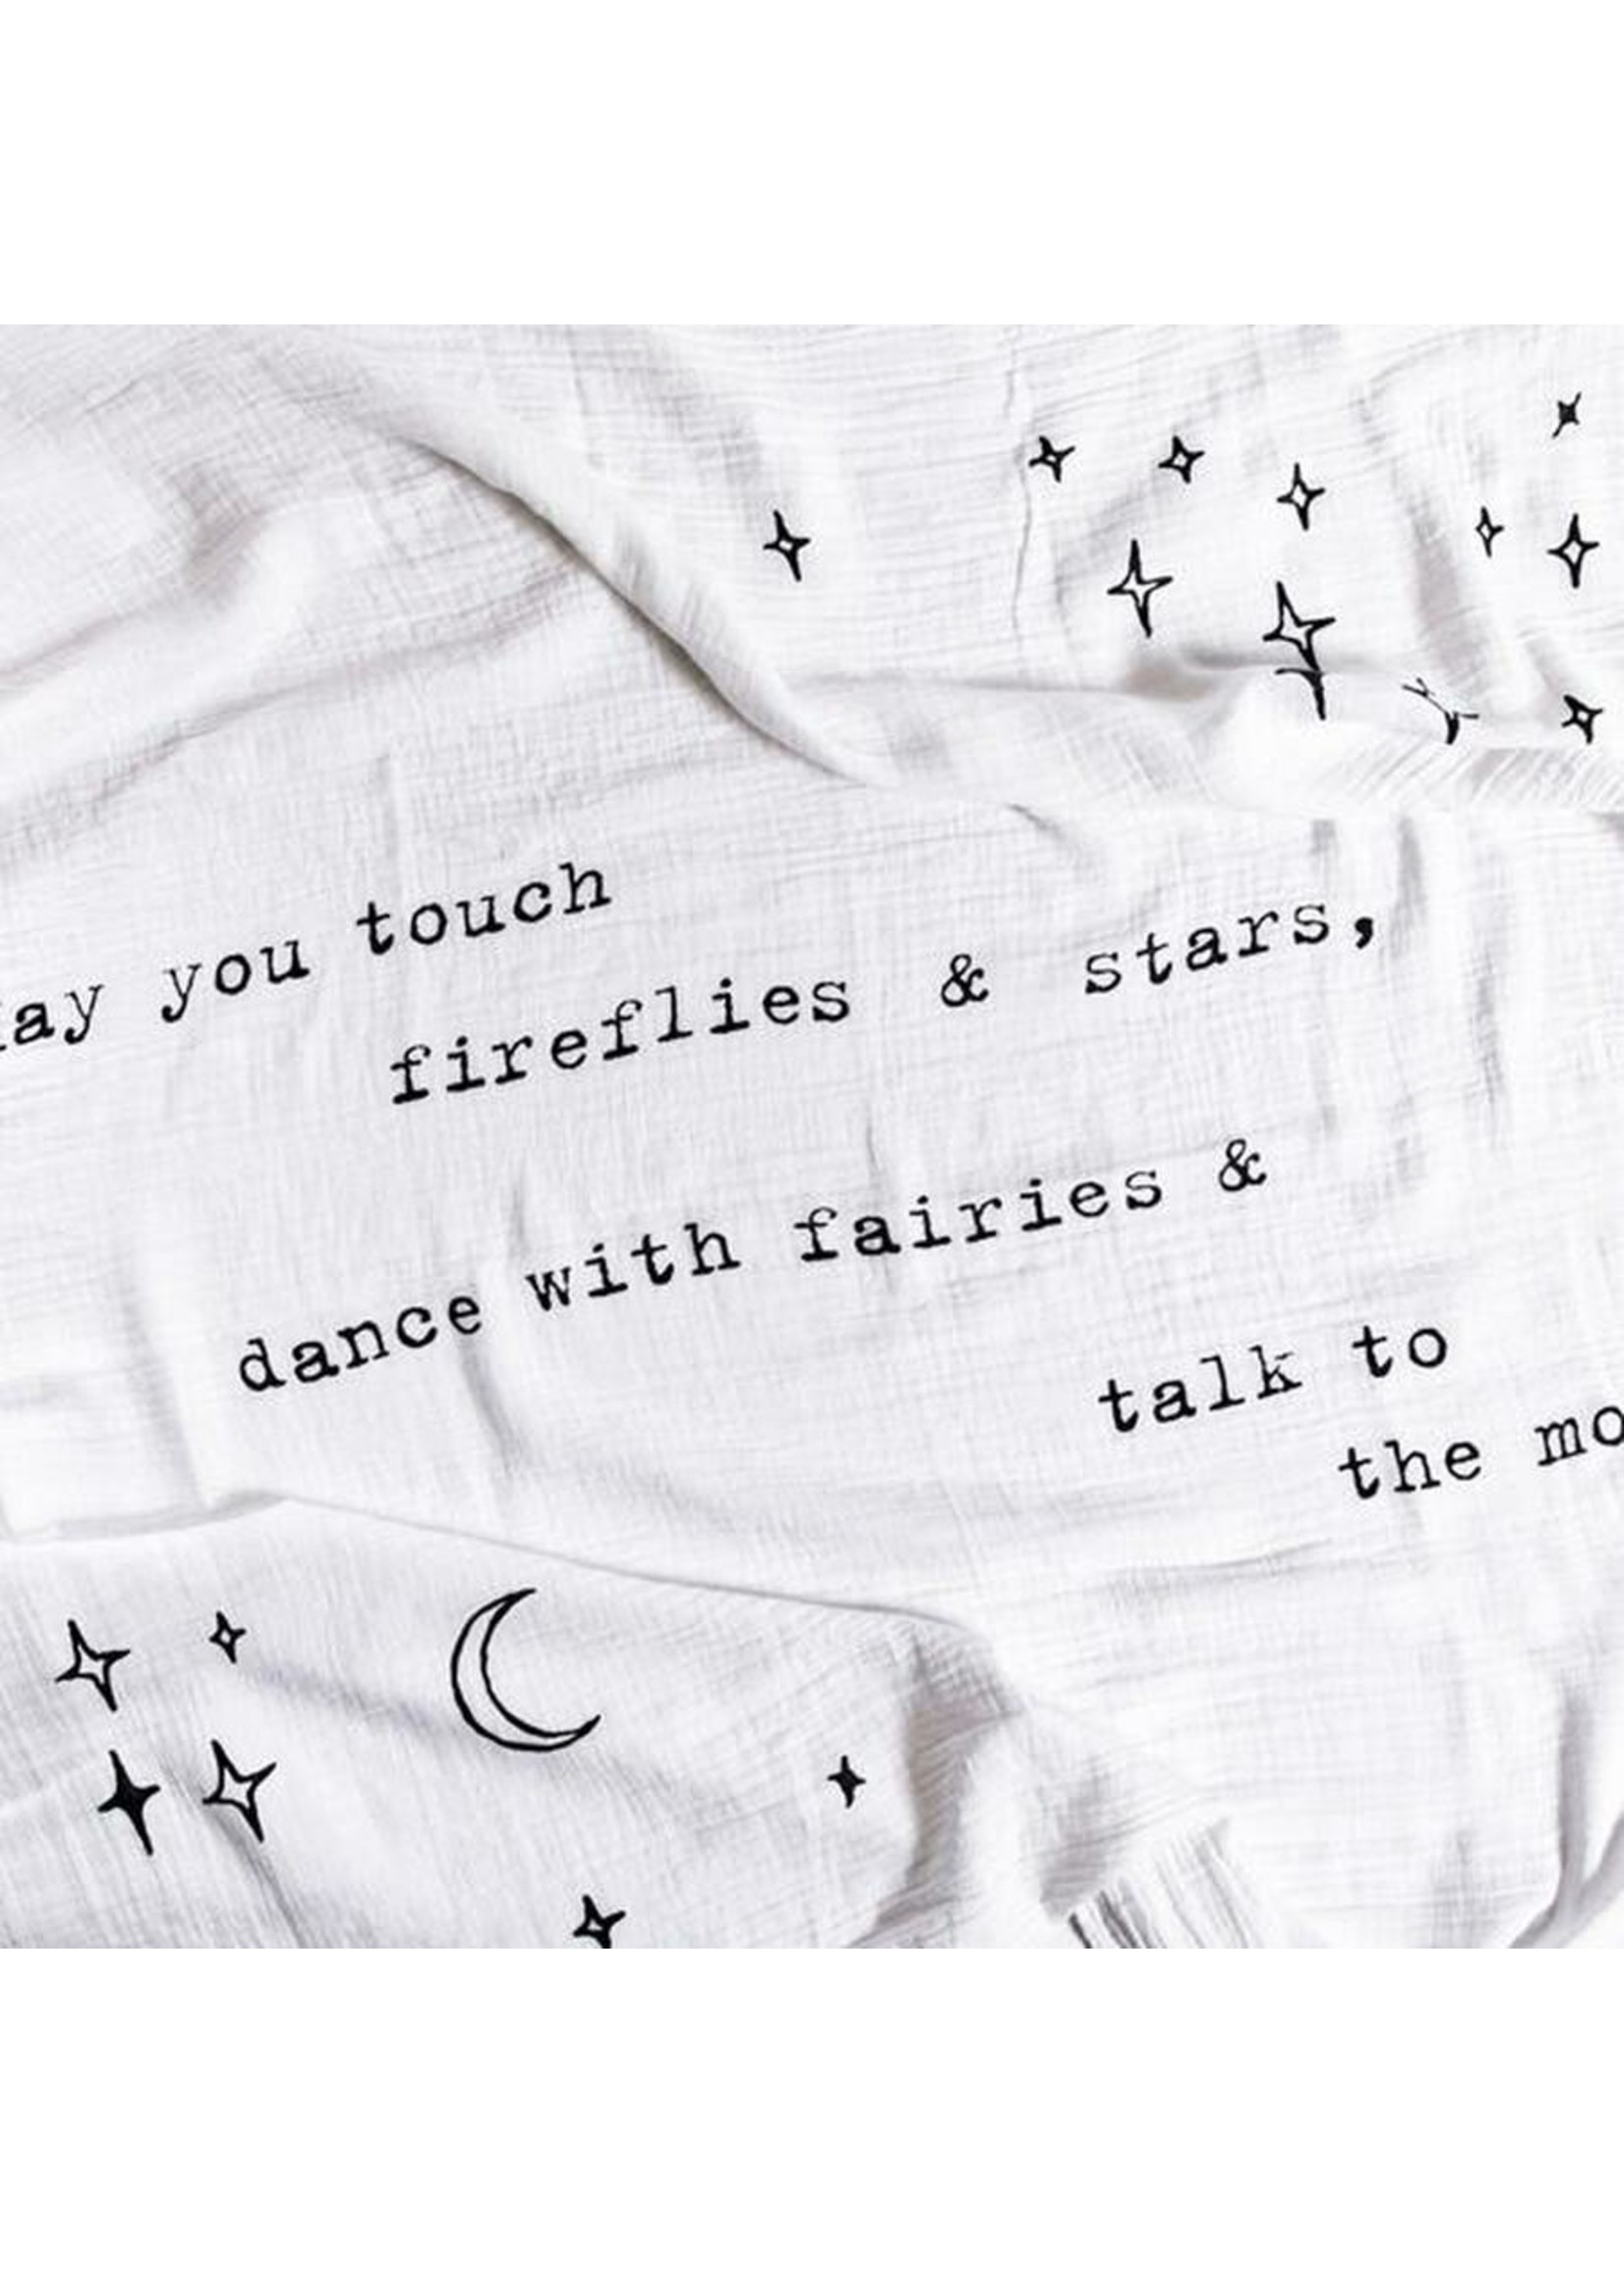 Sugarboo Sugarboo & Co. Organic Swaddle - May You Touch Fireflies